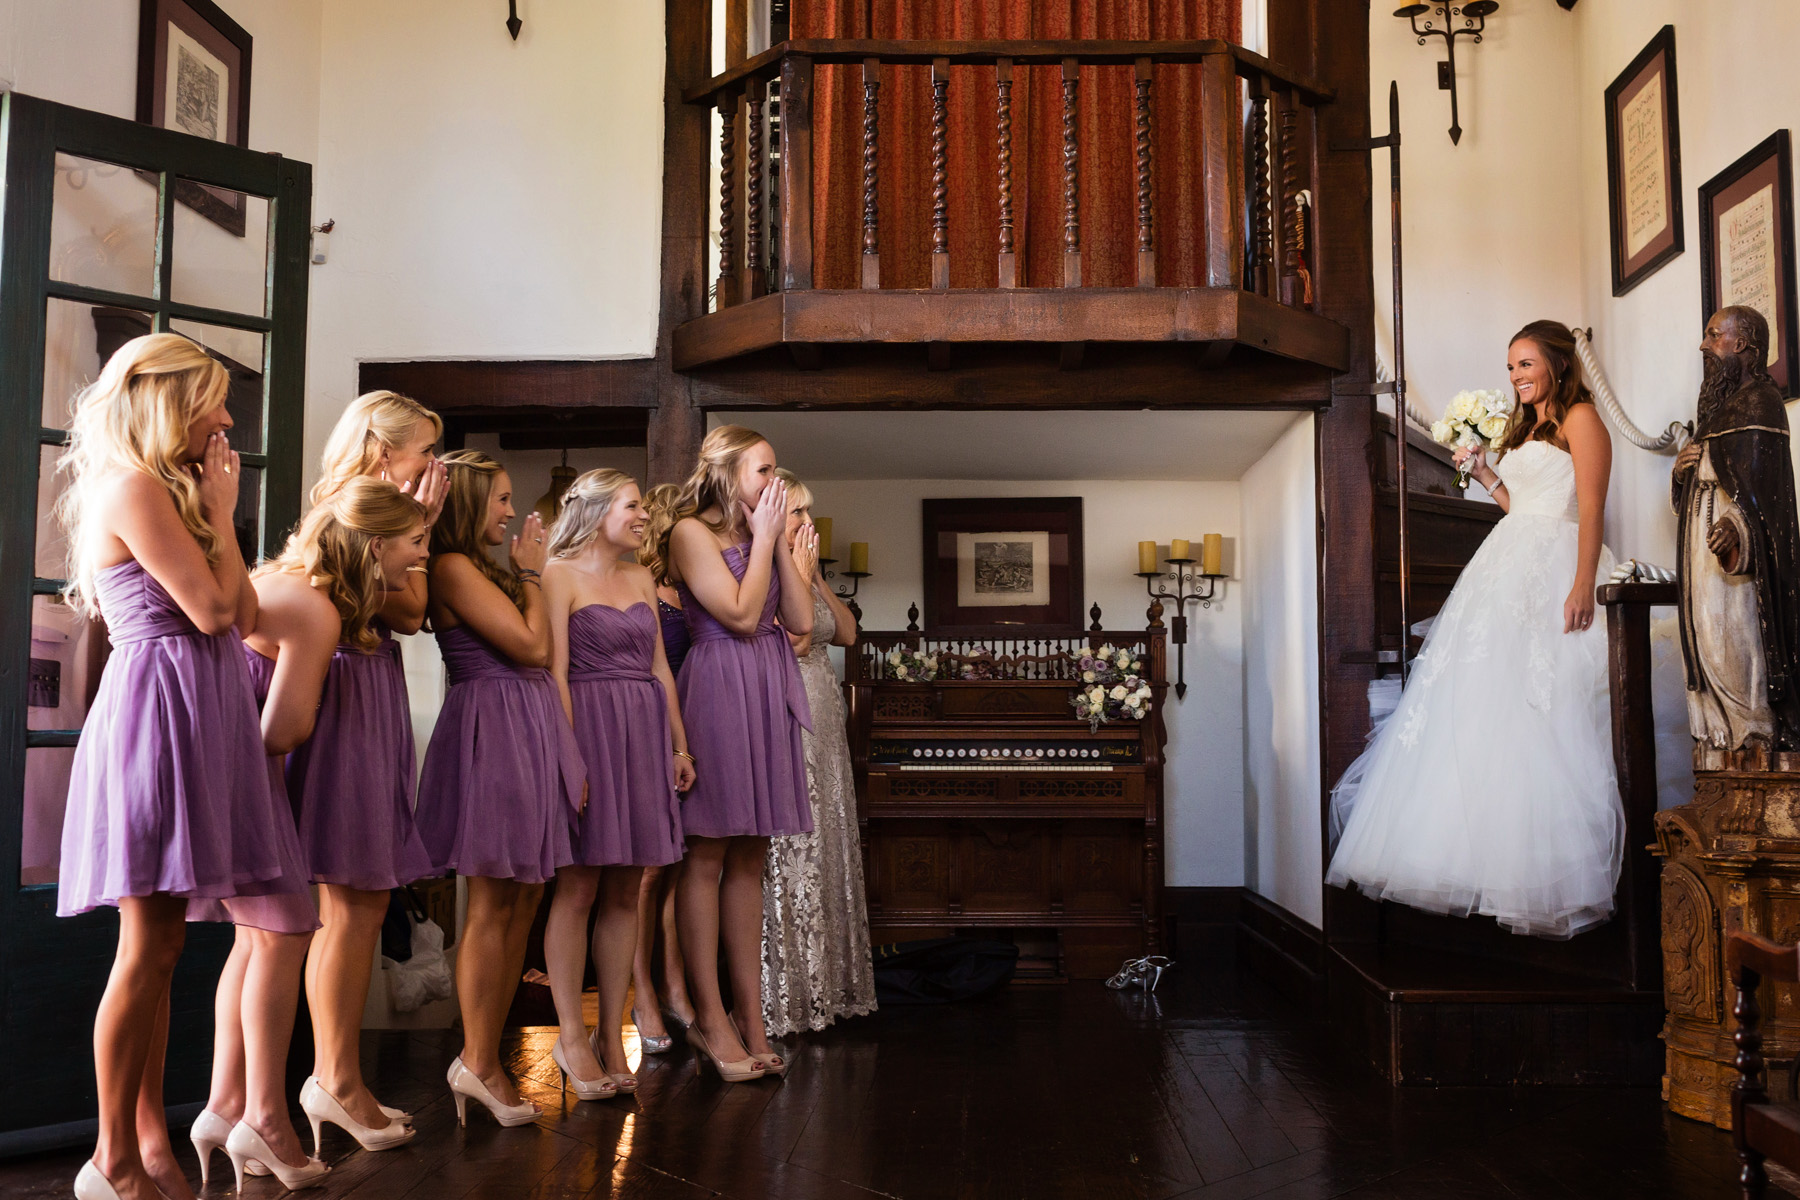 Andrea and Jason got married at The Mission San Juan Capistrano, a pretty OC wedding venue.  This was the first time her bridesmaids saw her in her dress!